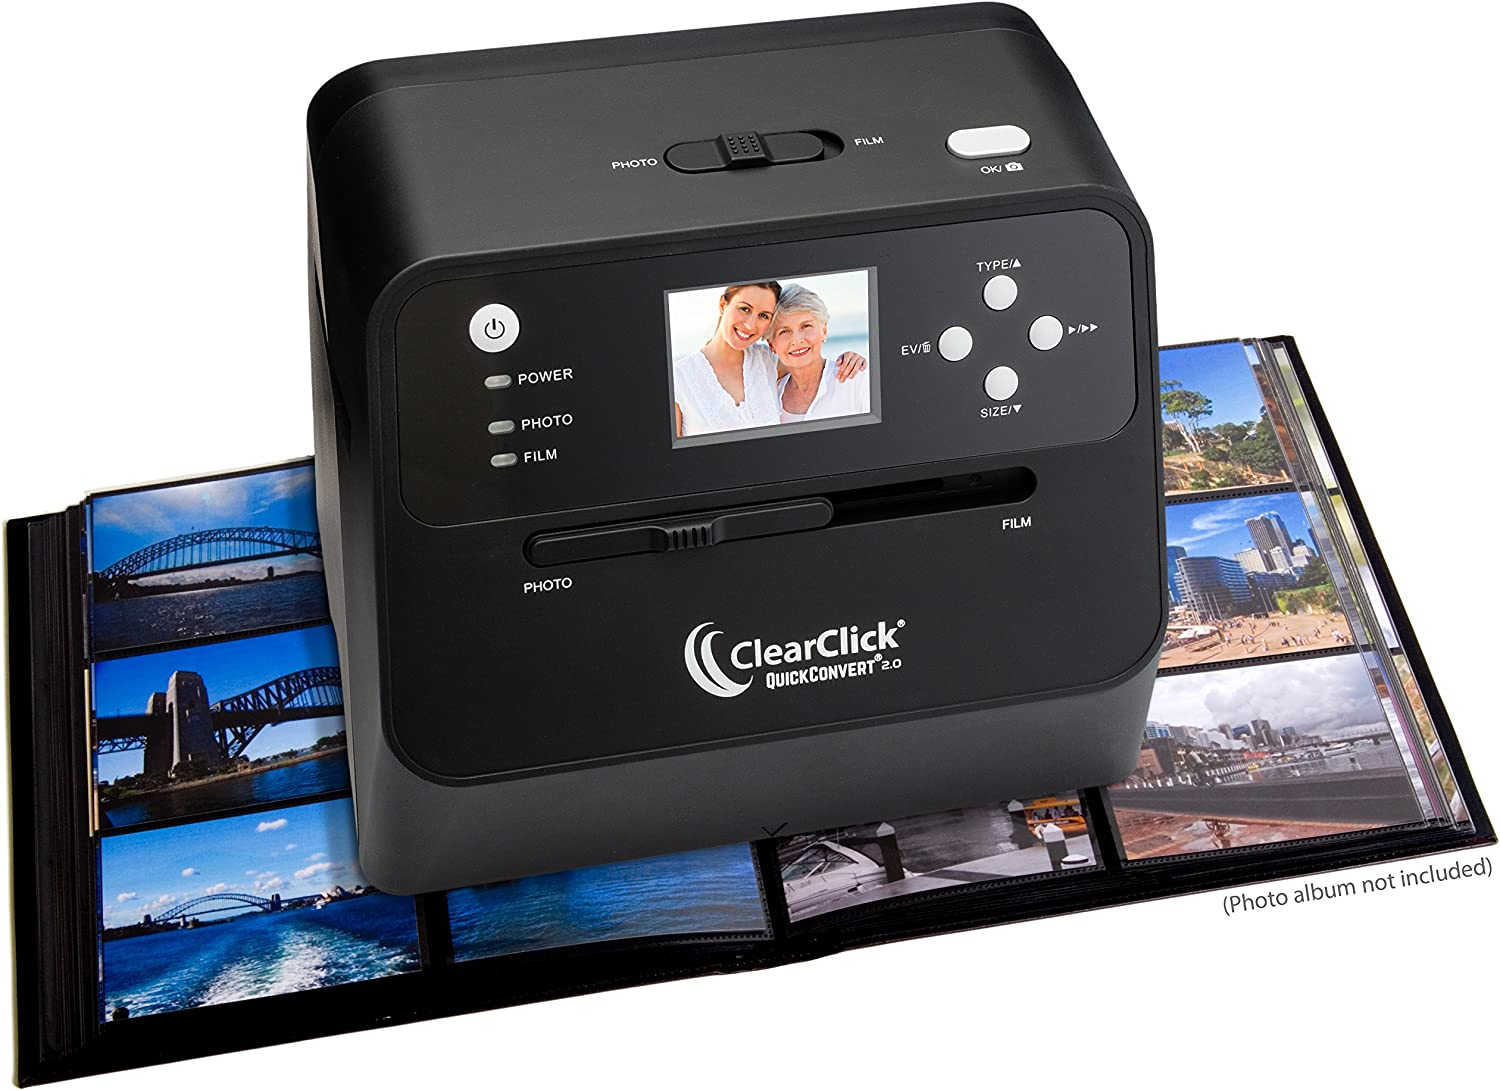 ClearClick 14 MP QuickConvert 2.0 Photo, Slide, and Negative Scanner - Scan 4x6 Photos & 35mm, 110, 126 Film